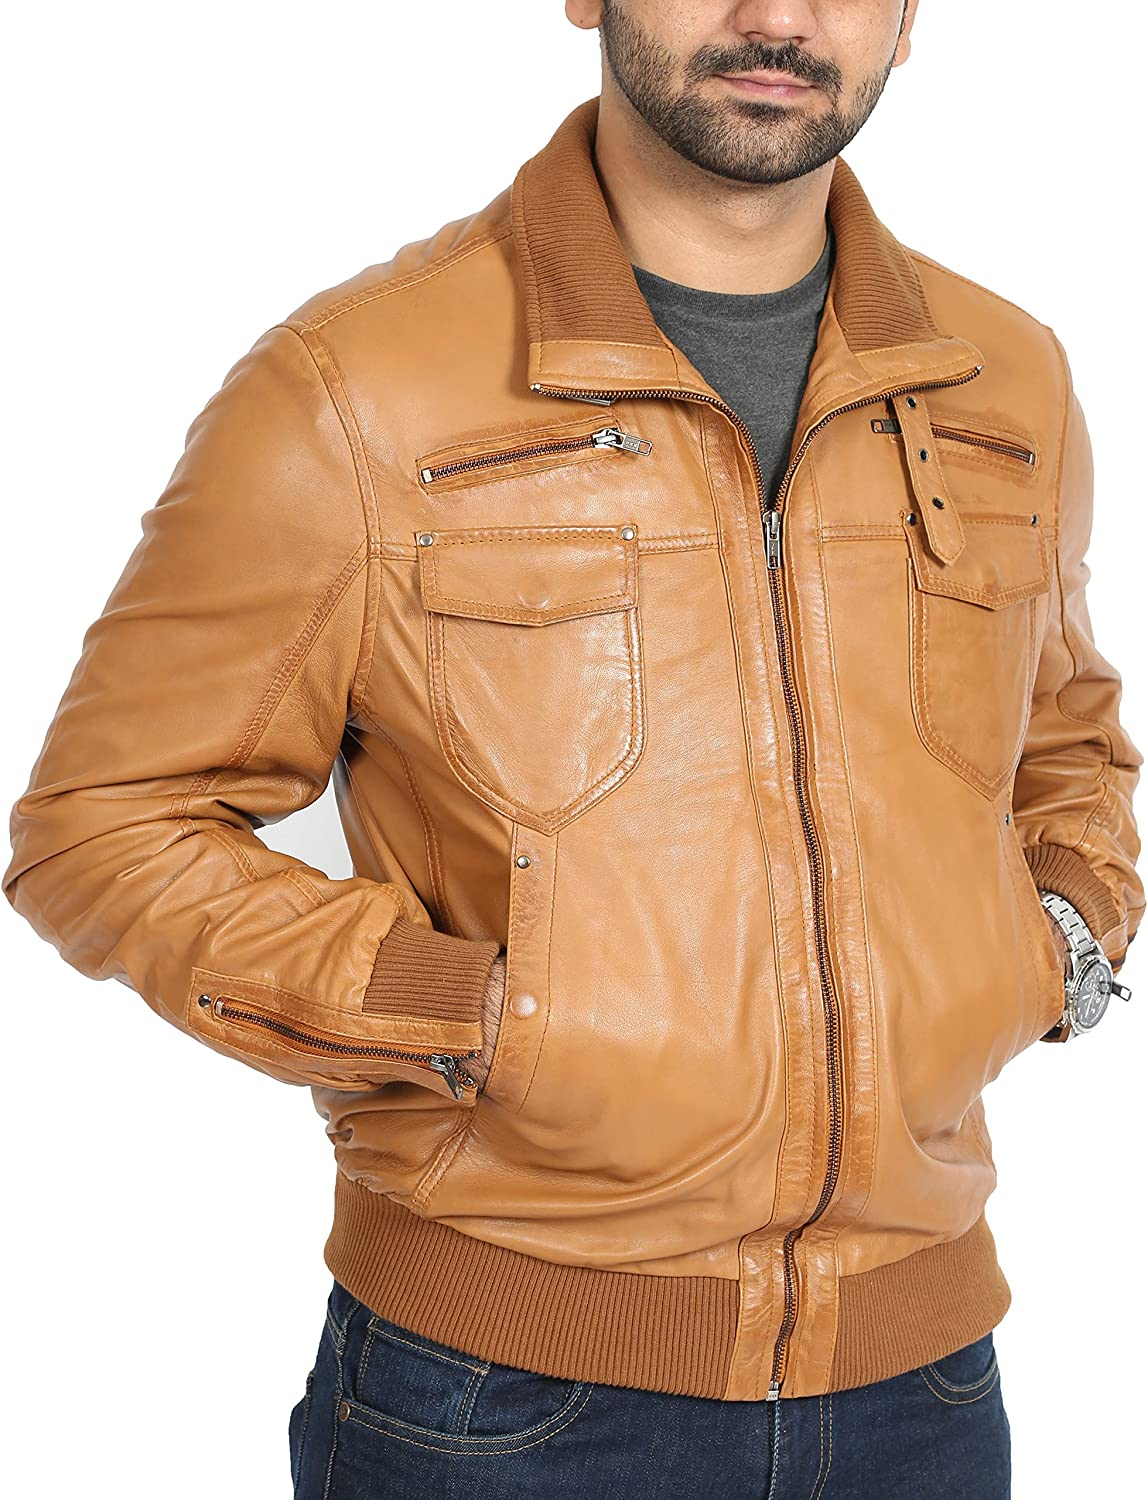 Mens Fitted Bomber Style Leather Jacket High Fashion Blouson Joe Tan